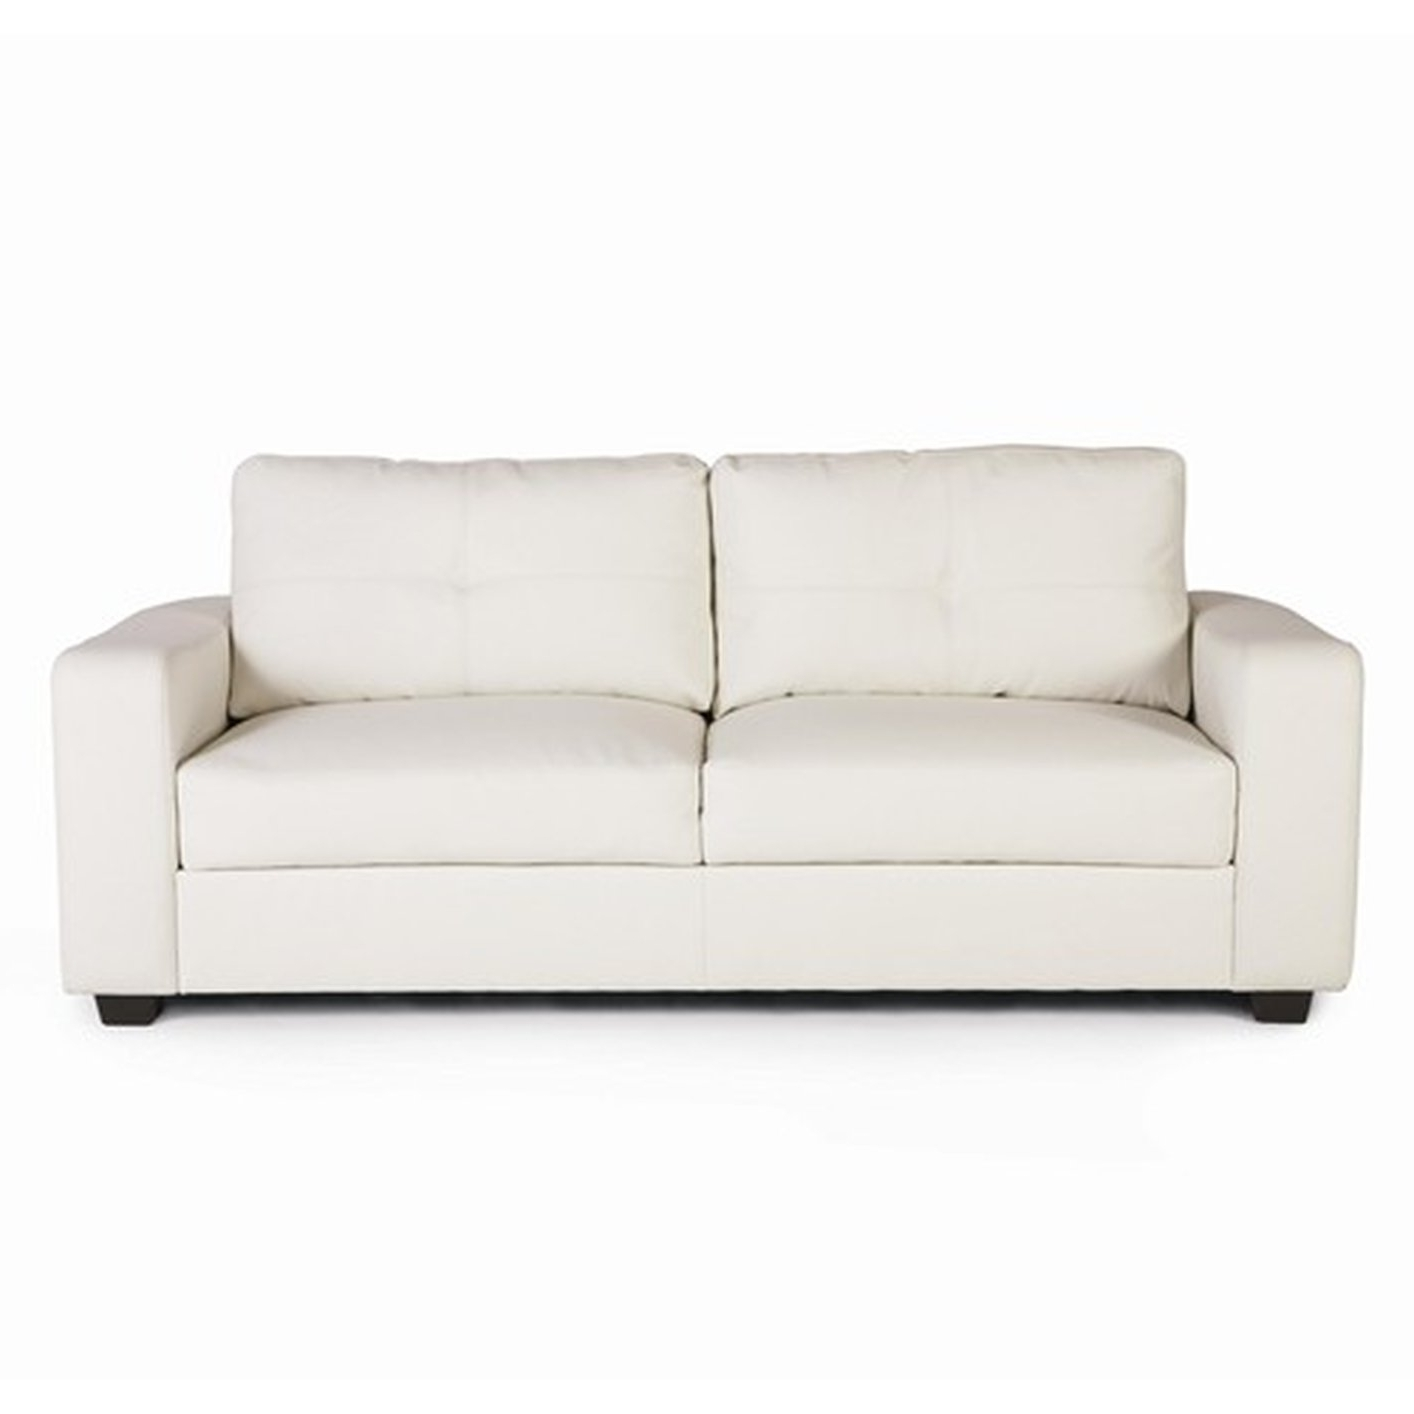 2018 Jasmine White Leather Sofa – Steal A Sofa Furniture Outlet Los Pertaining To White Sofa Chairs (View 15 of 20)